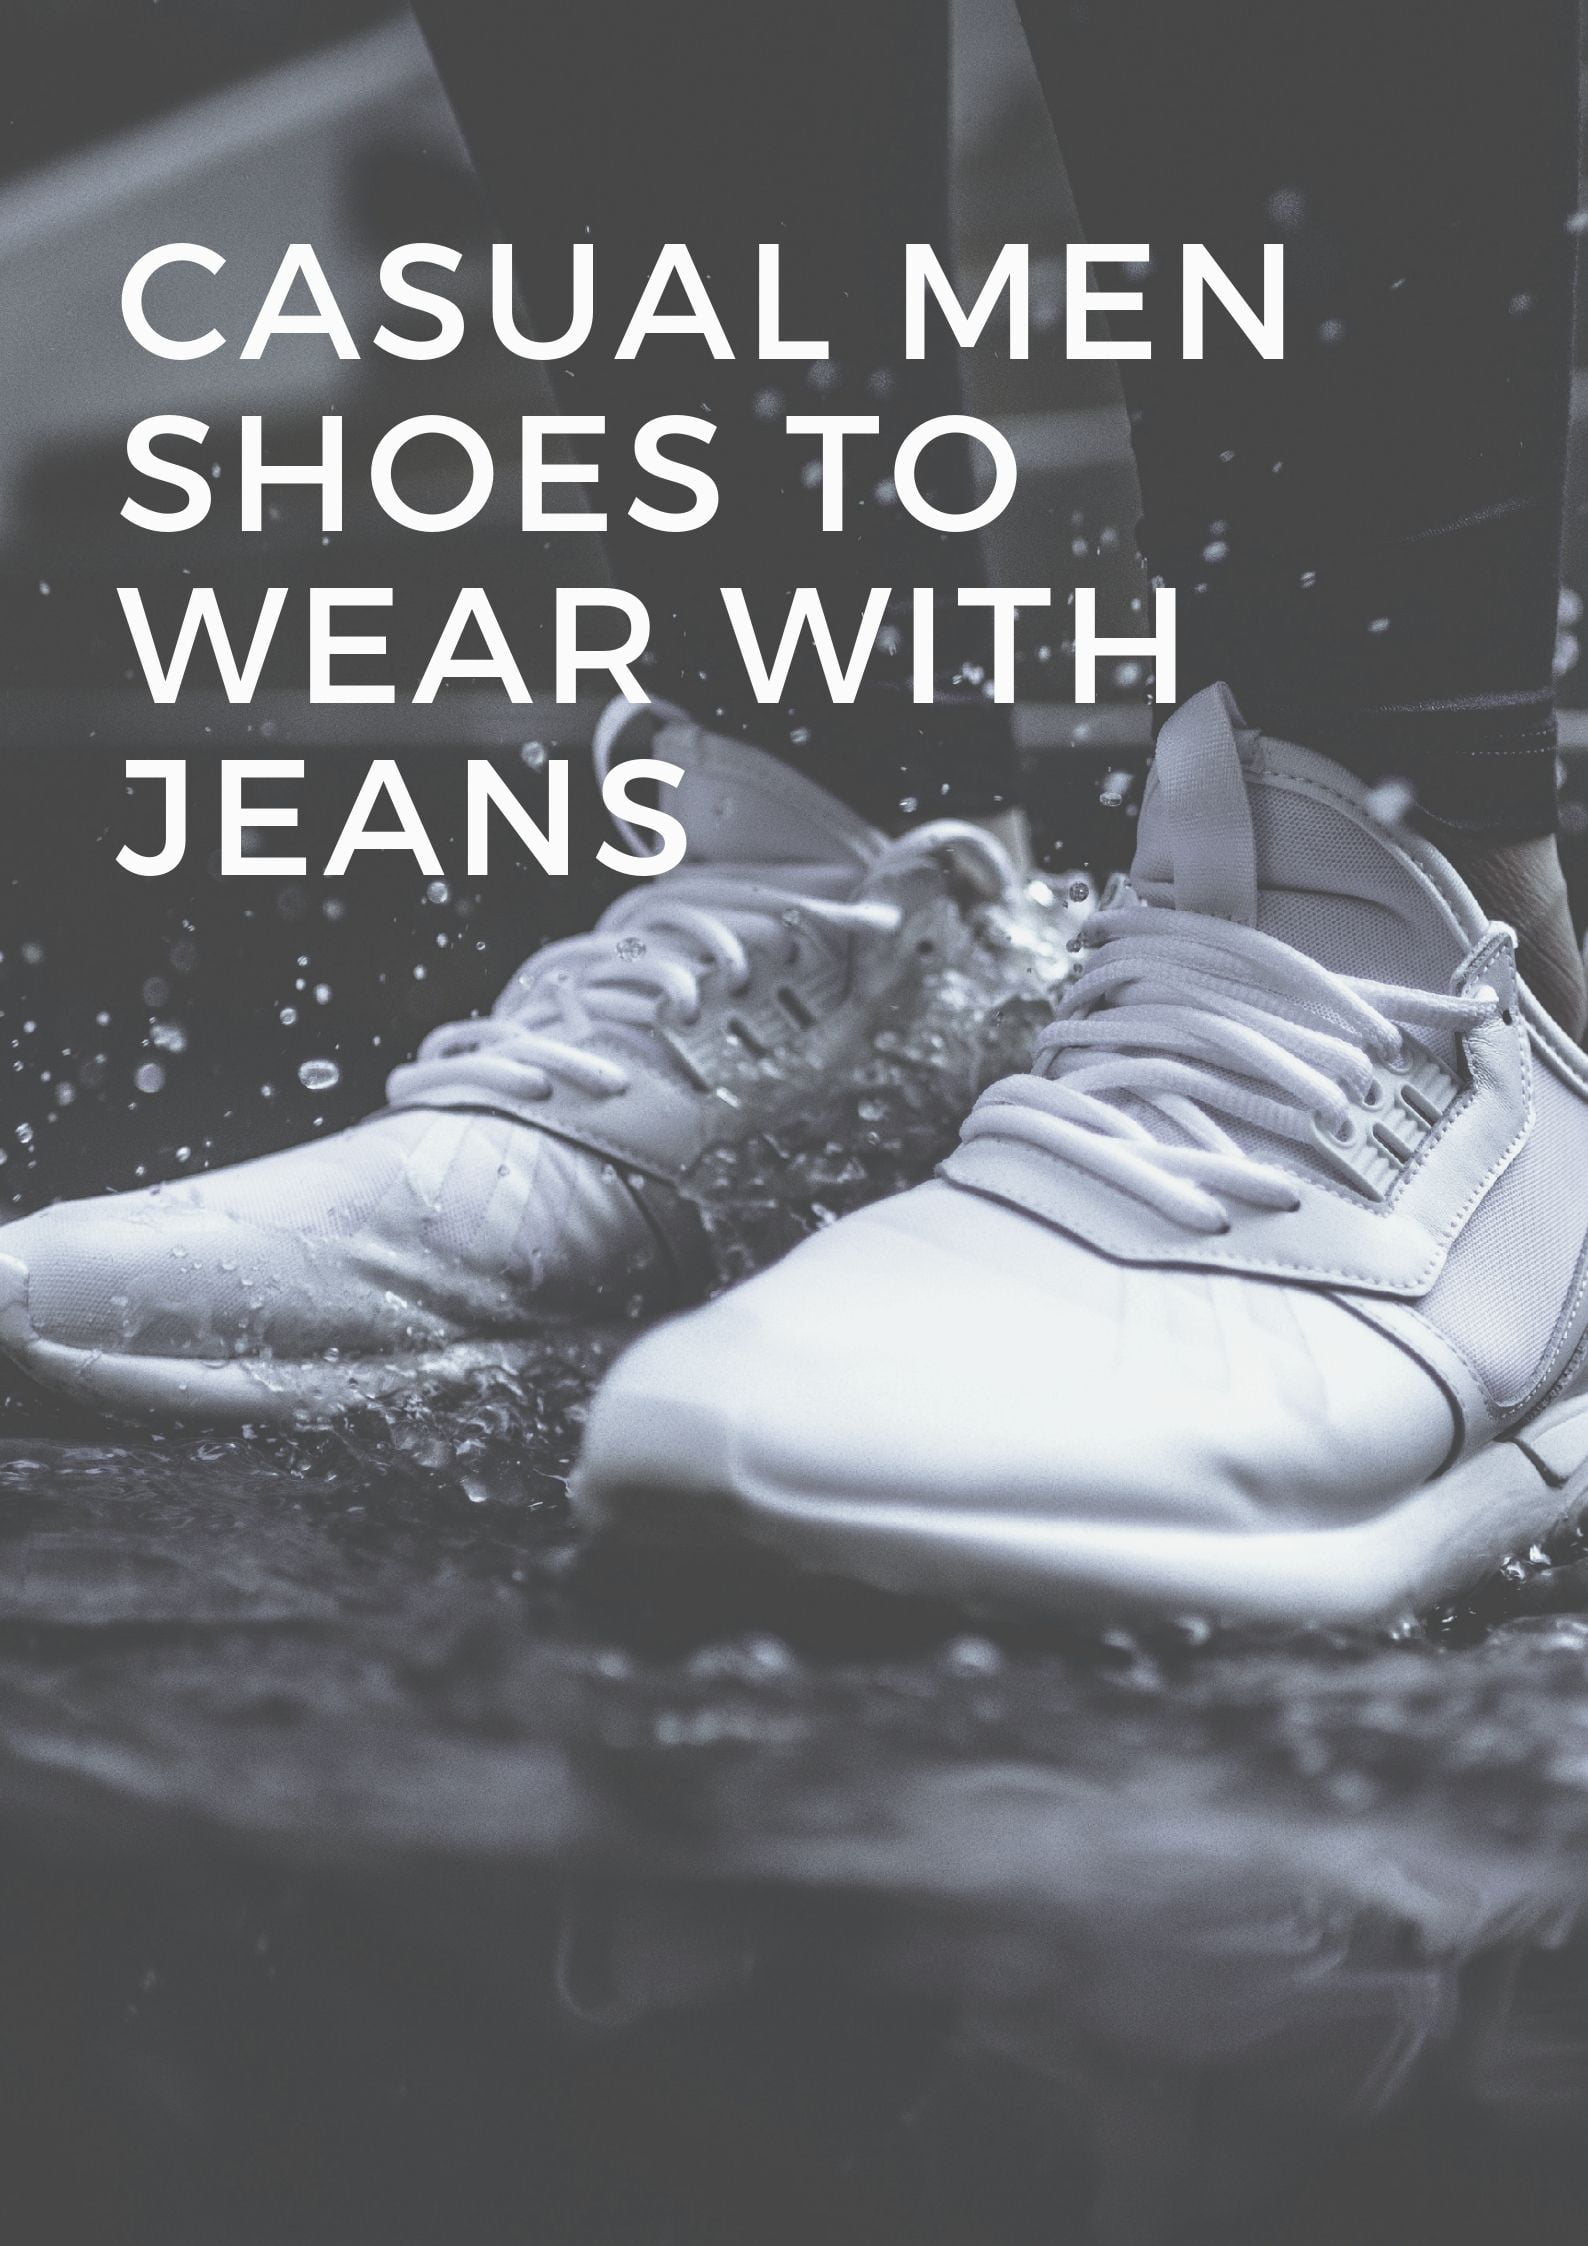 Casual Men Shoes to Wear With Jeans